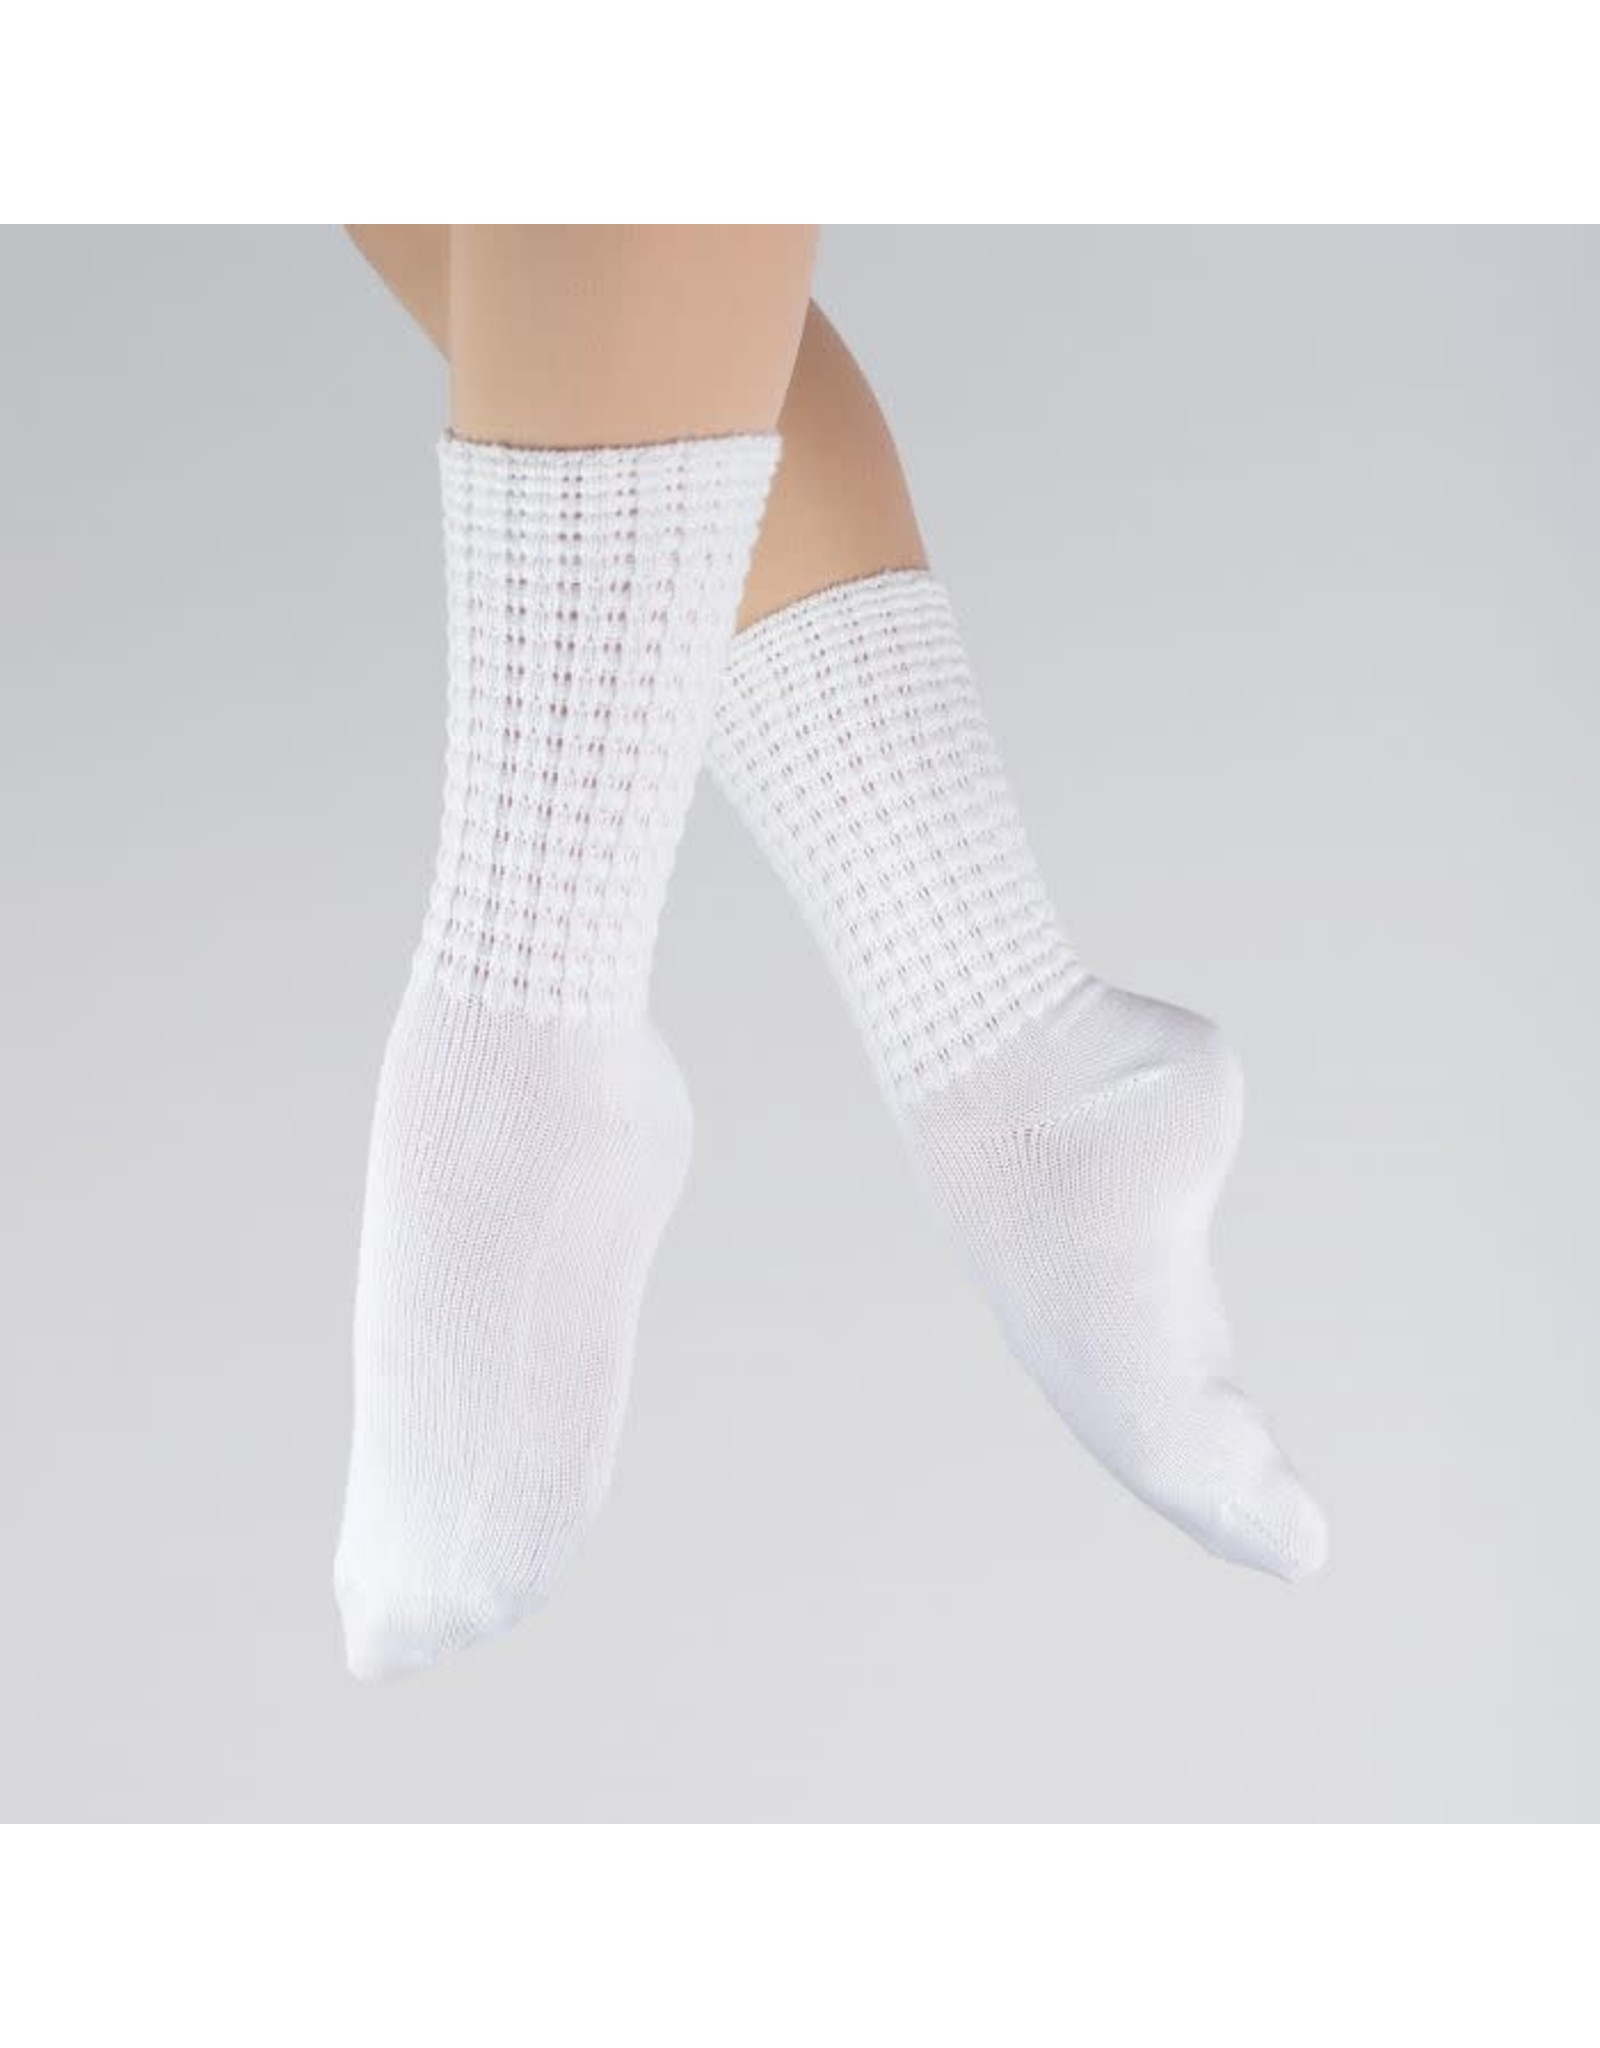 Pillows for Pointes Feis Mates Ankle Arch Support Socks (FMAA)